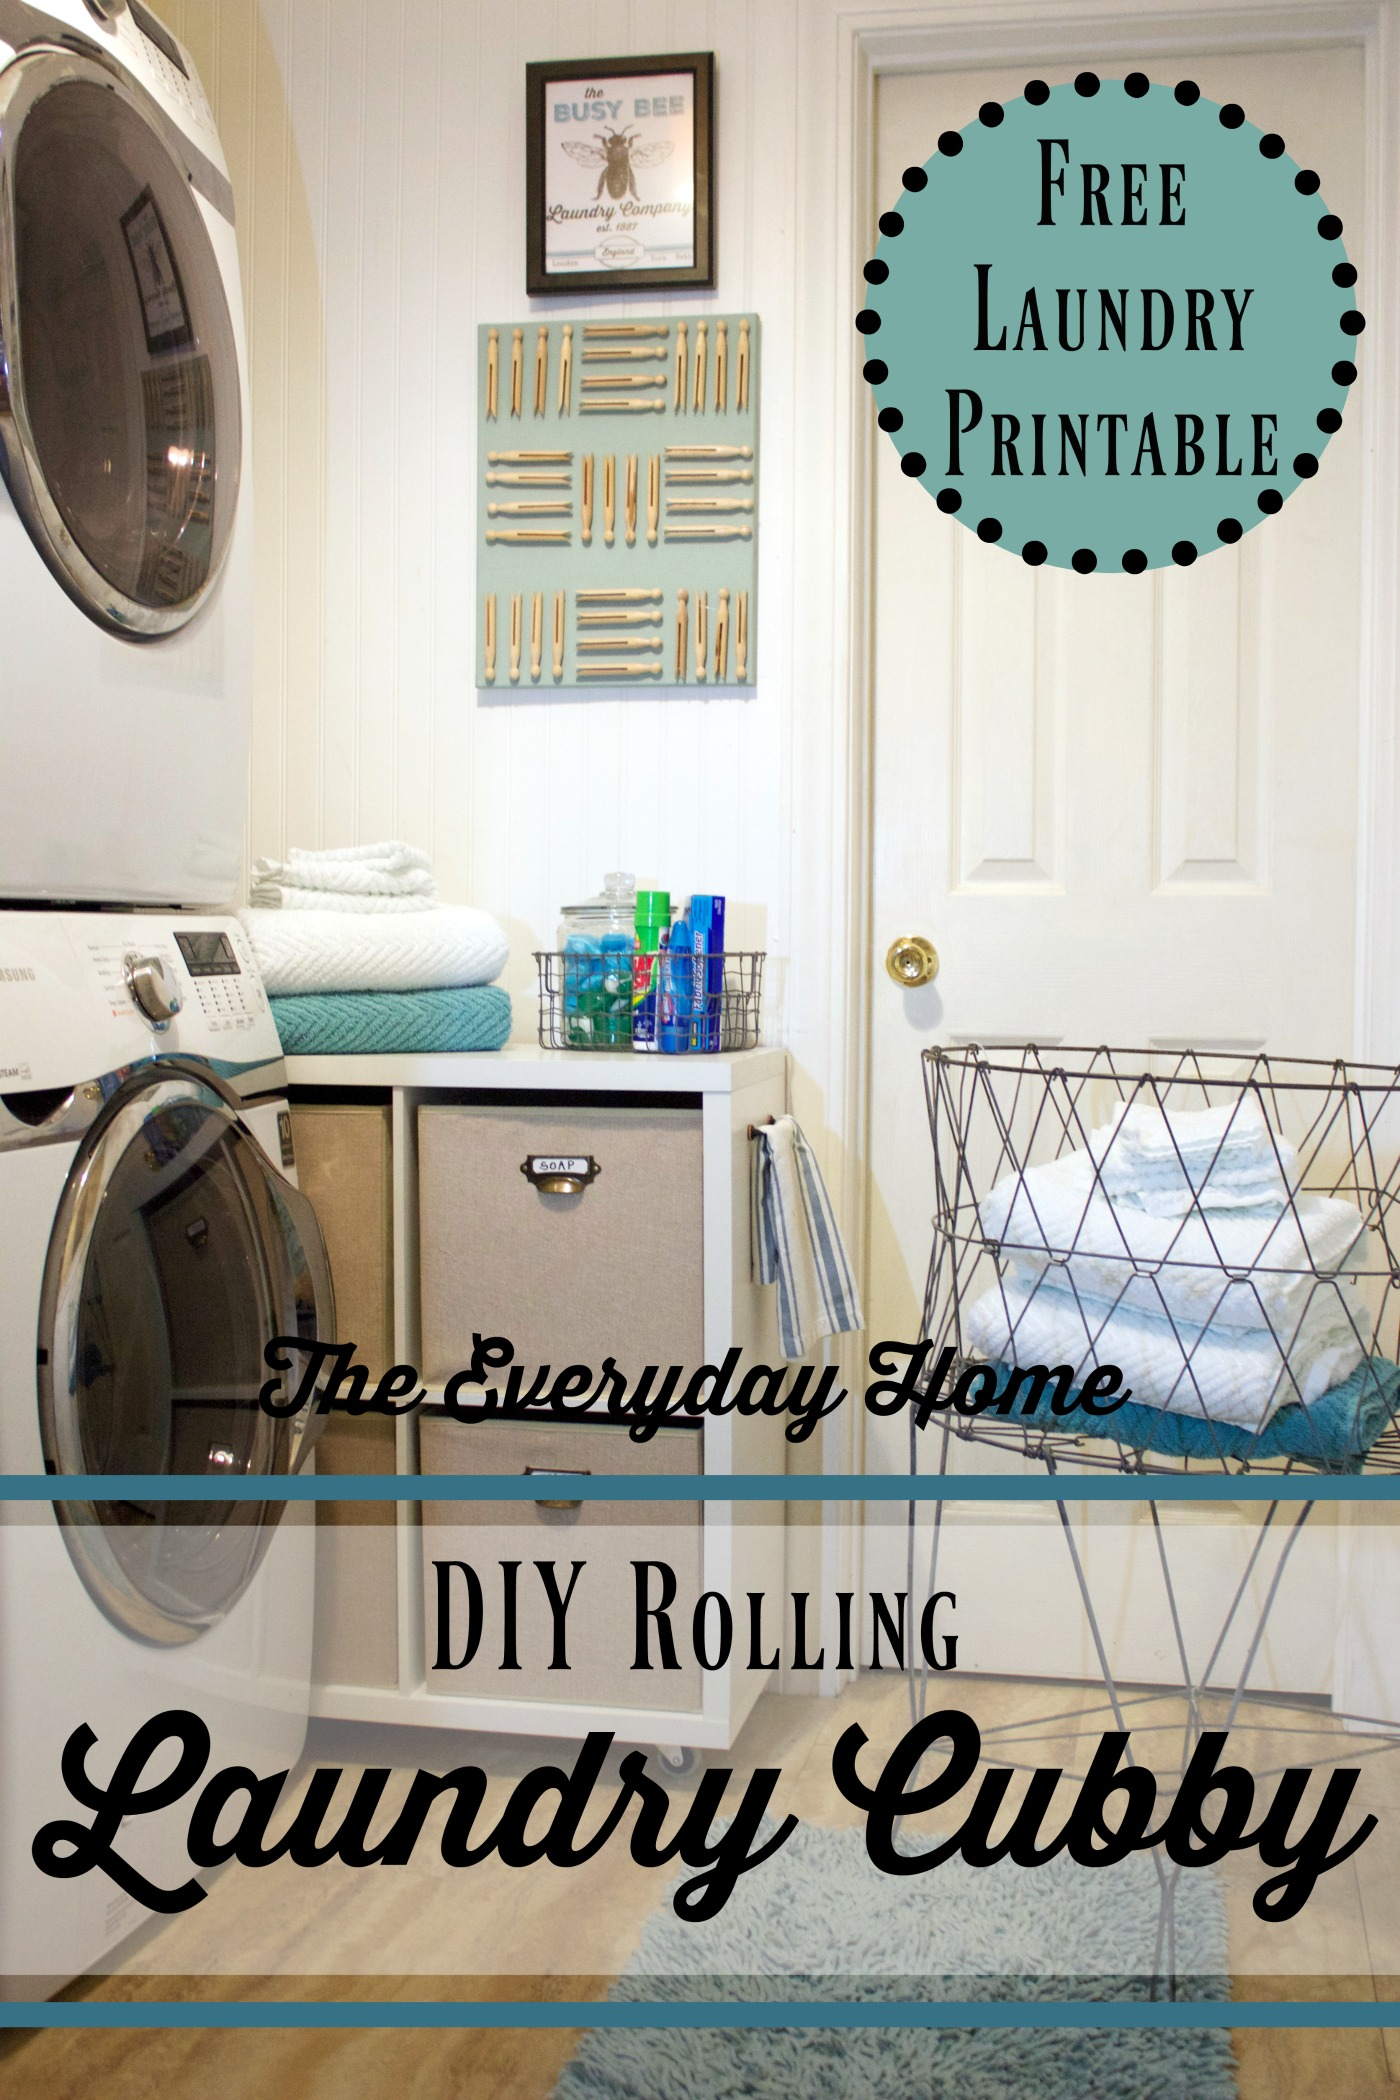 DIY Laundry Room Cubby - The Everyday Home